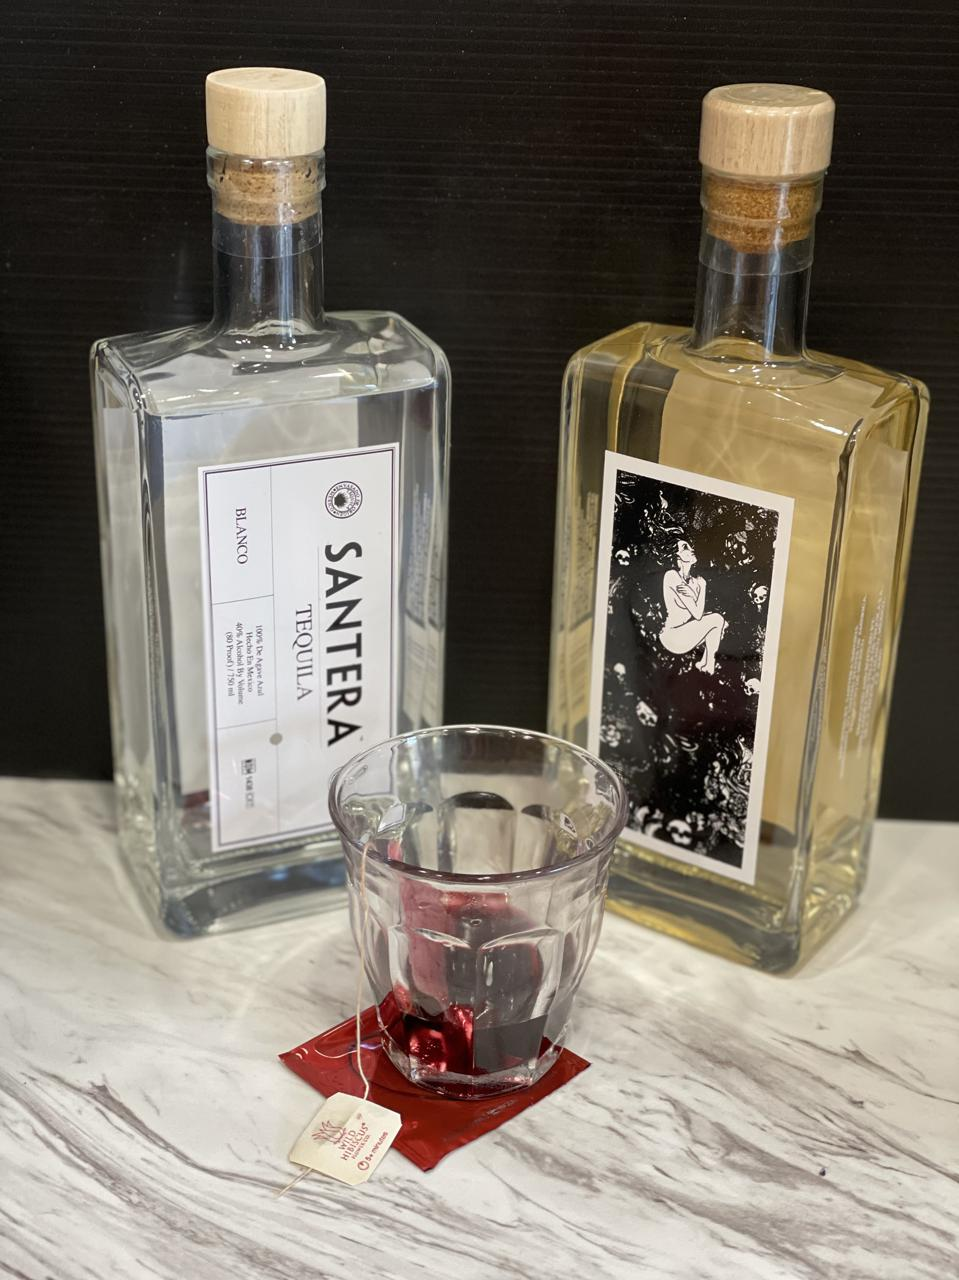 A bottle of Santera Blanco tequila and a bottle of Santera  reposado tequila are in the background of a glass of deep pink-red tequila that has been infused with a hibiscus flower tea bag.